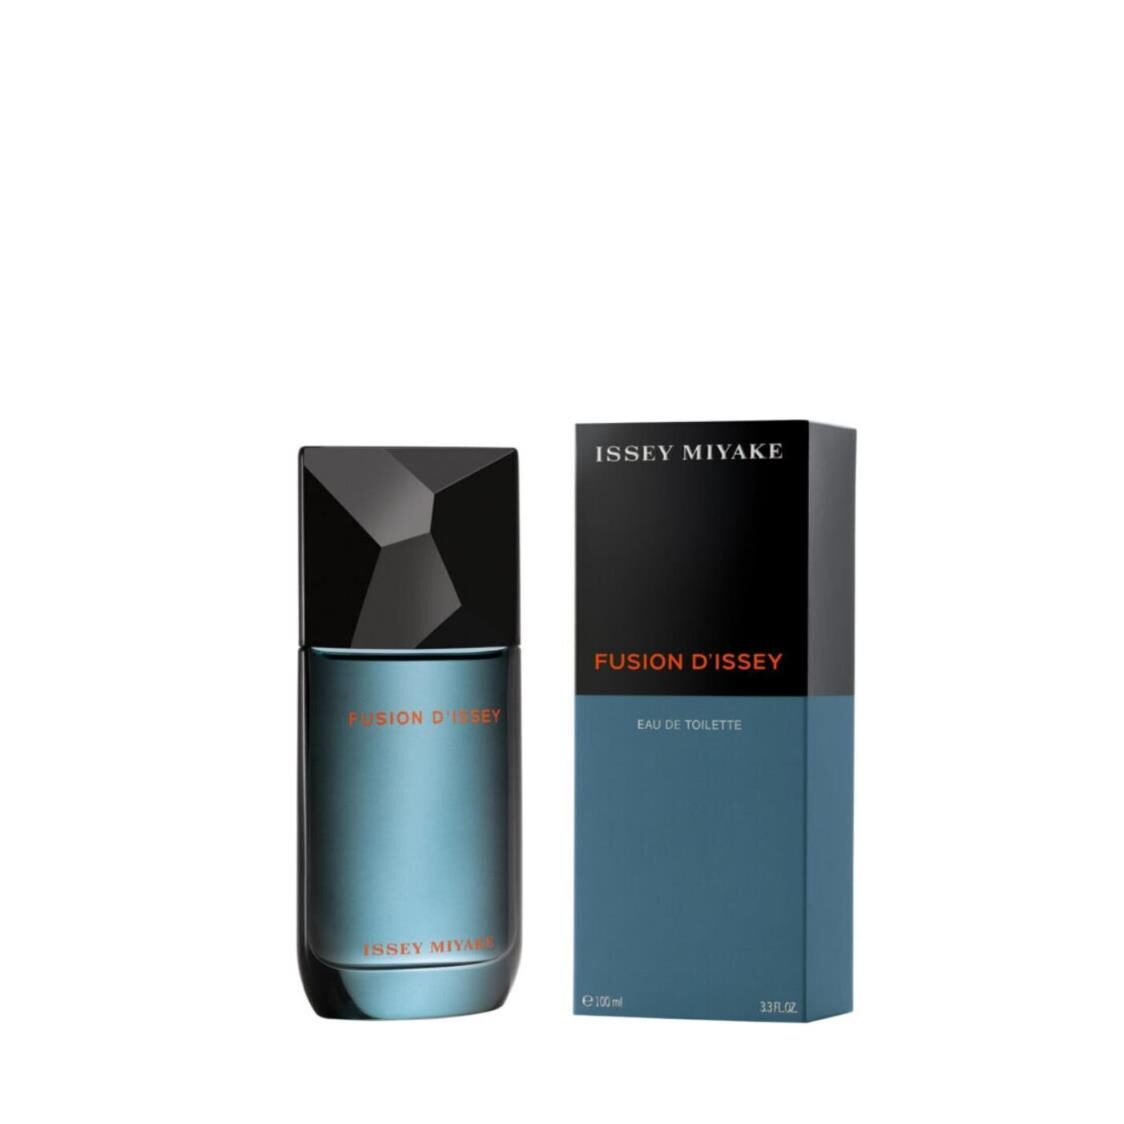 Fusion dIssey EDT 100ml